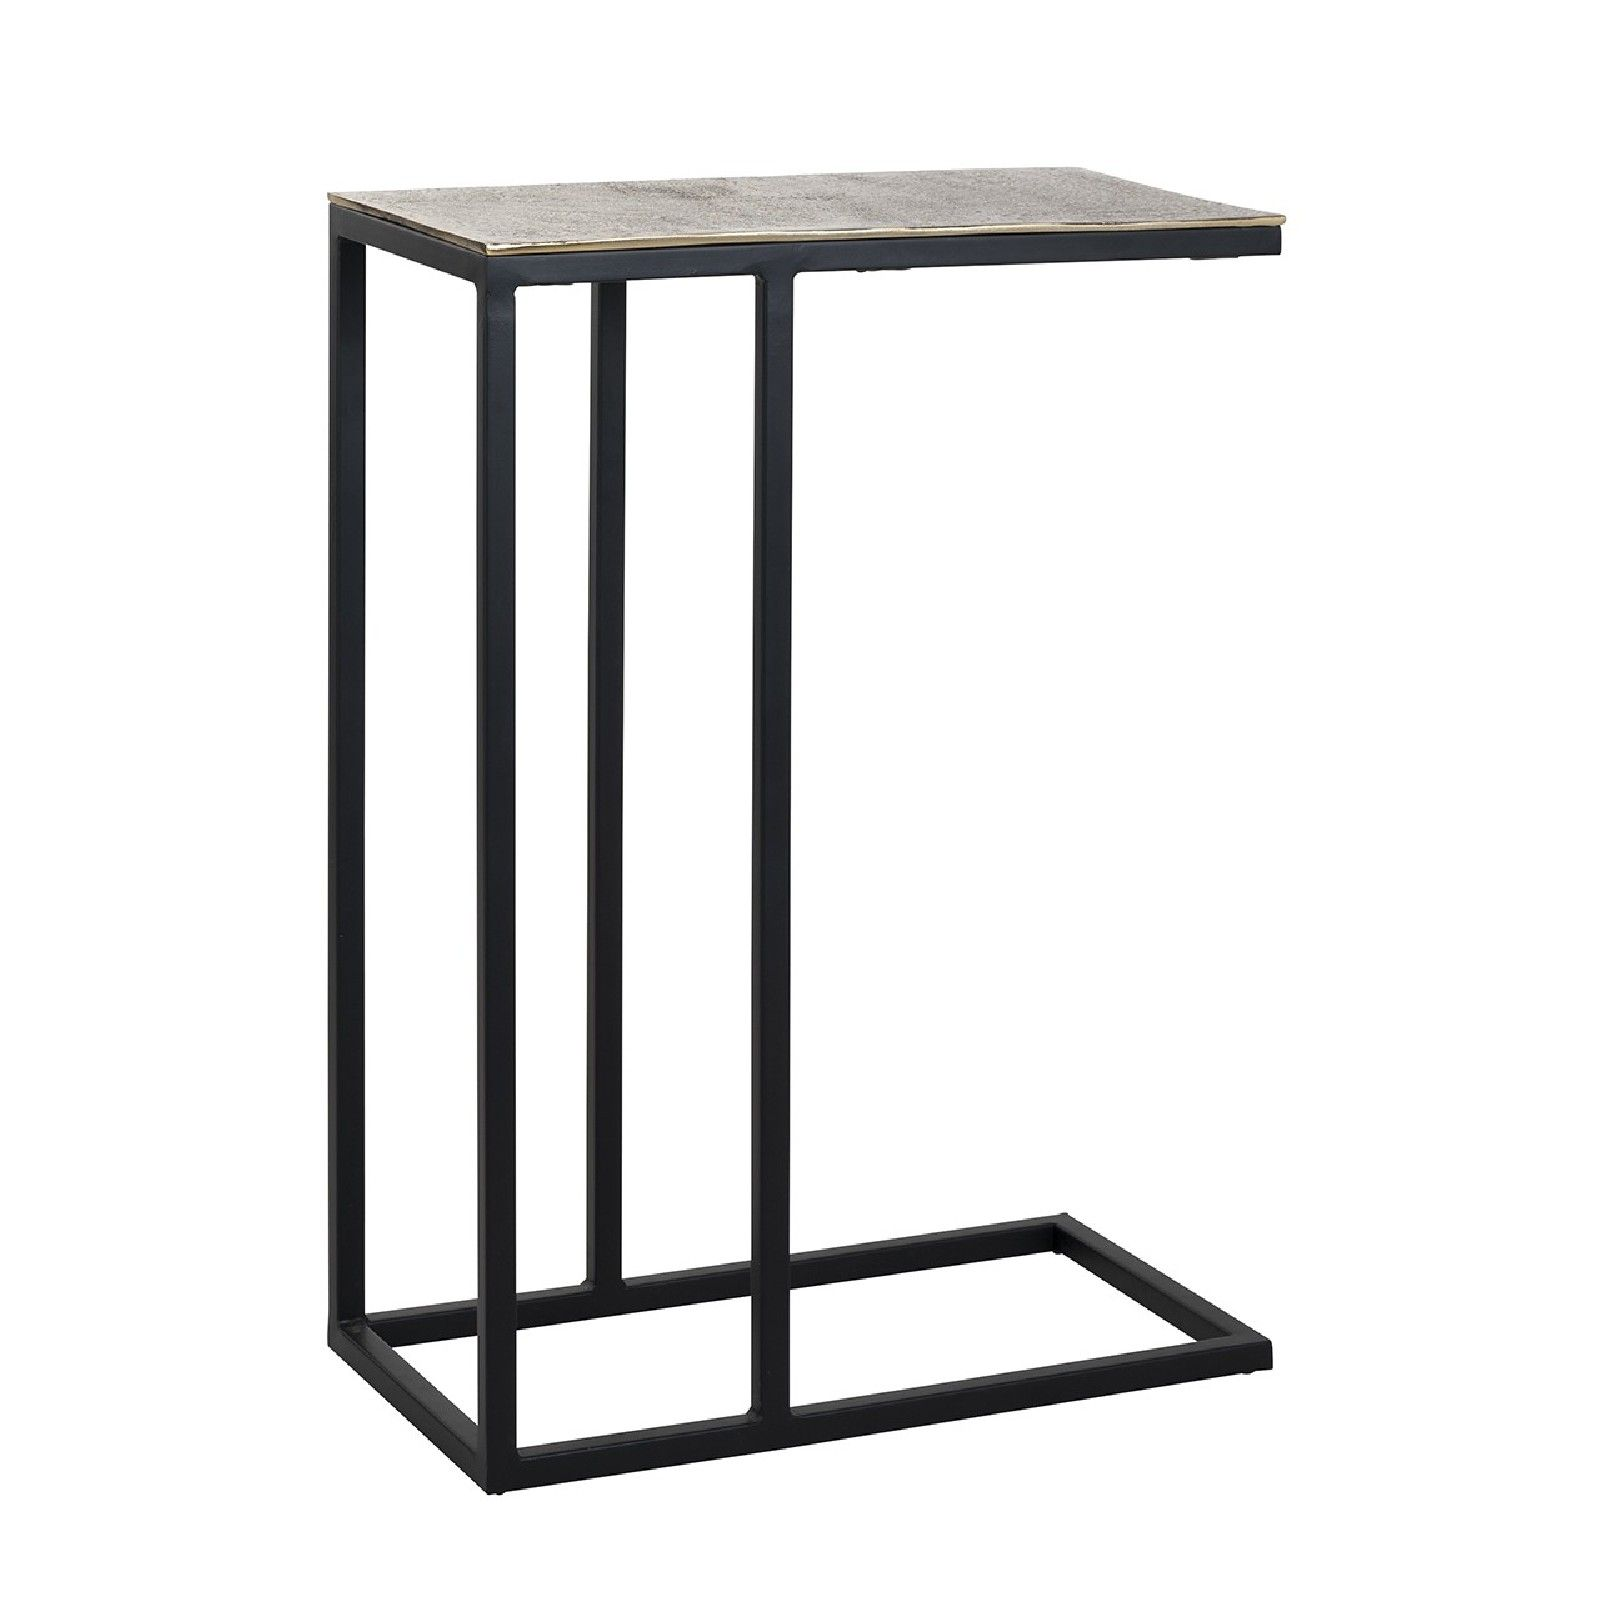 Table d'appoint Calloway champagne or Meuble Déco Tendance - 10